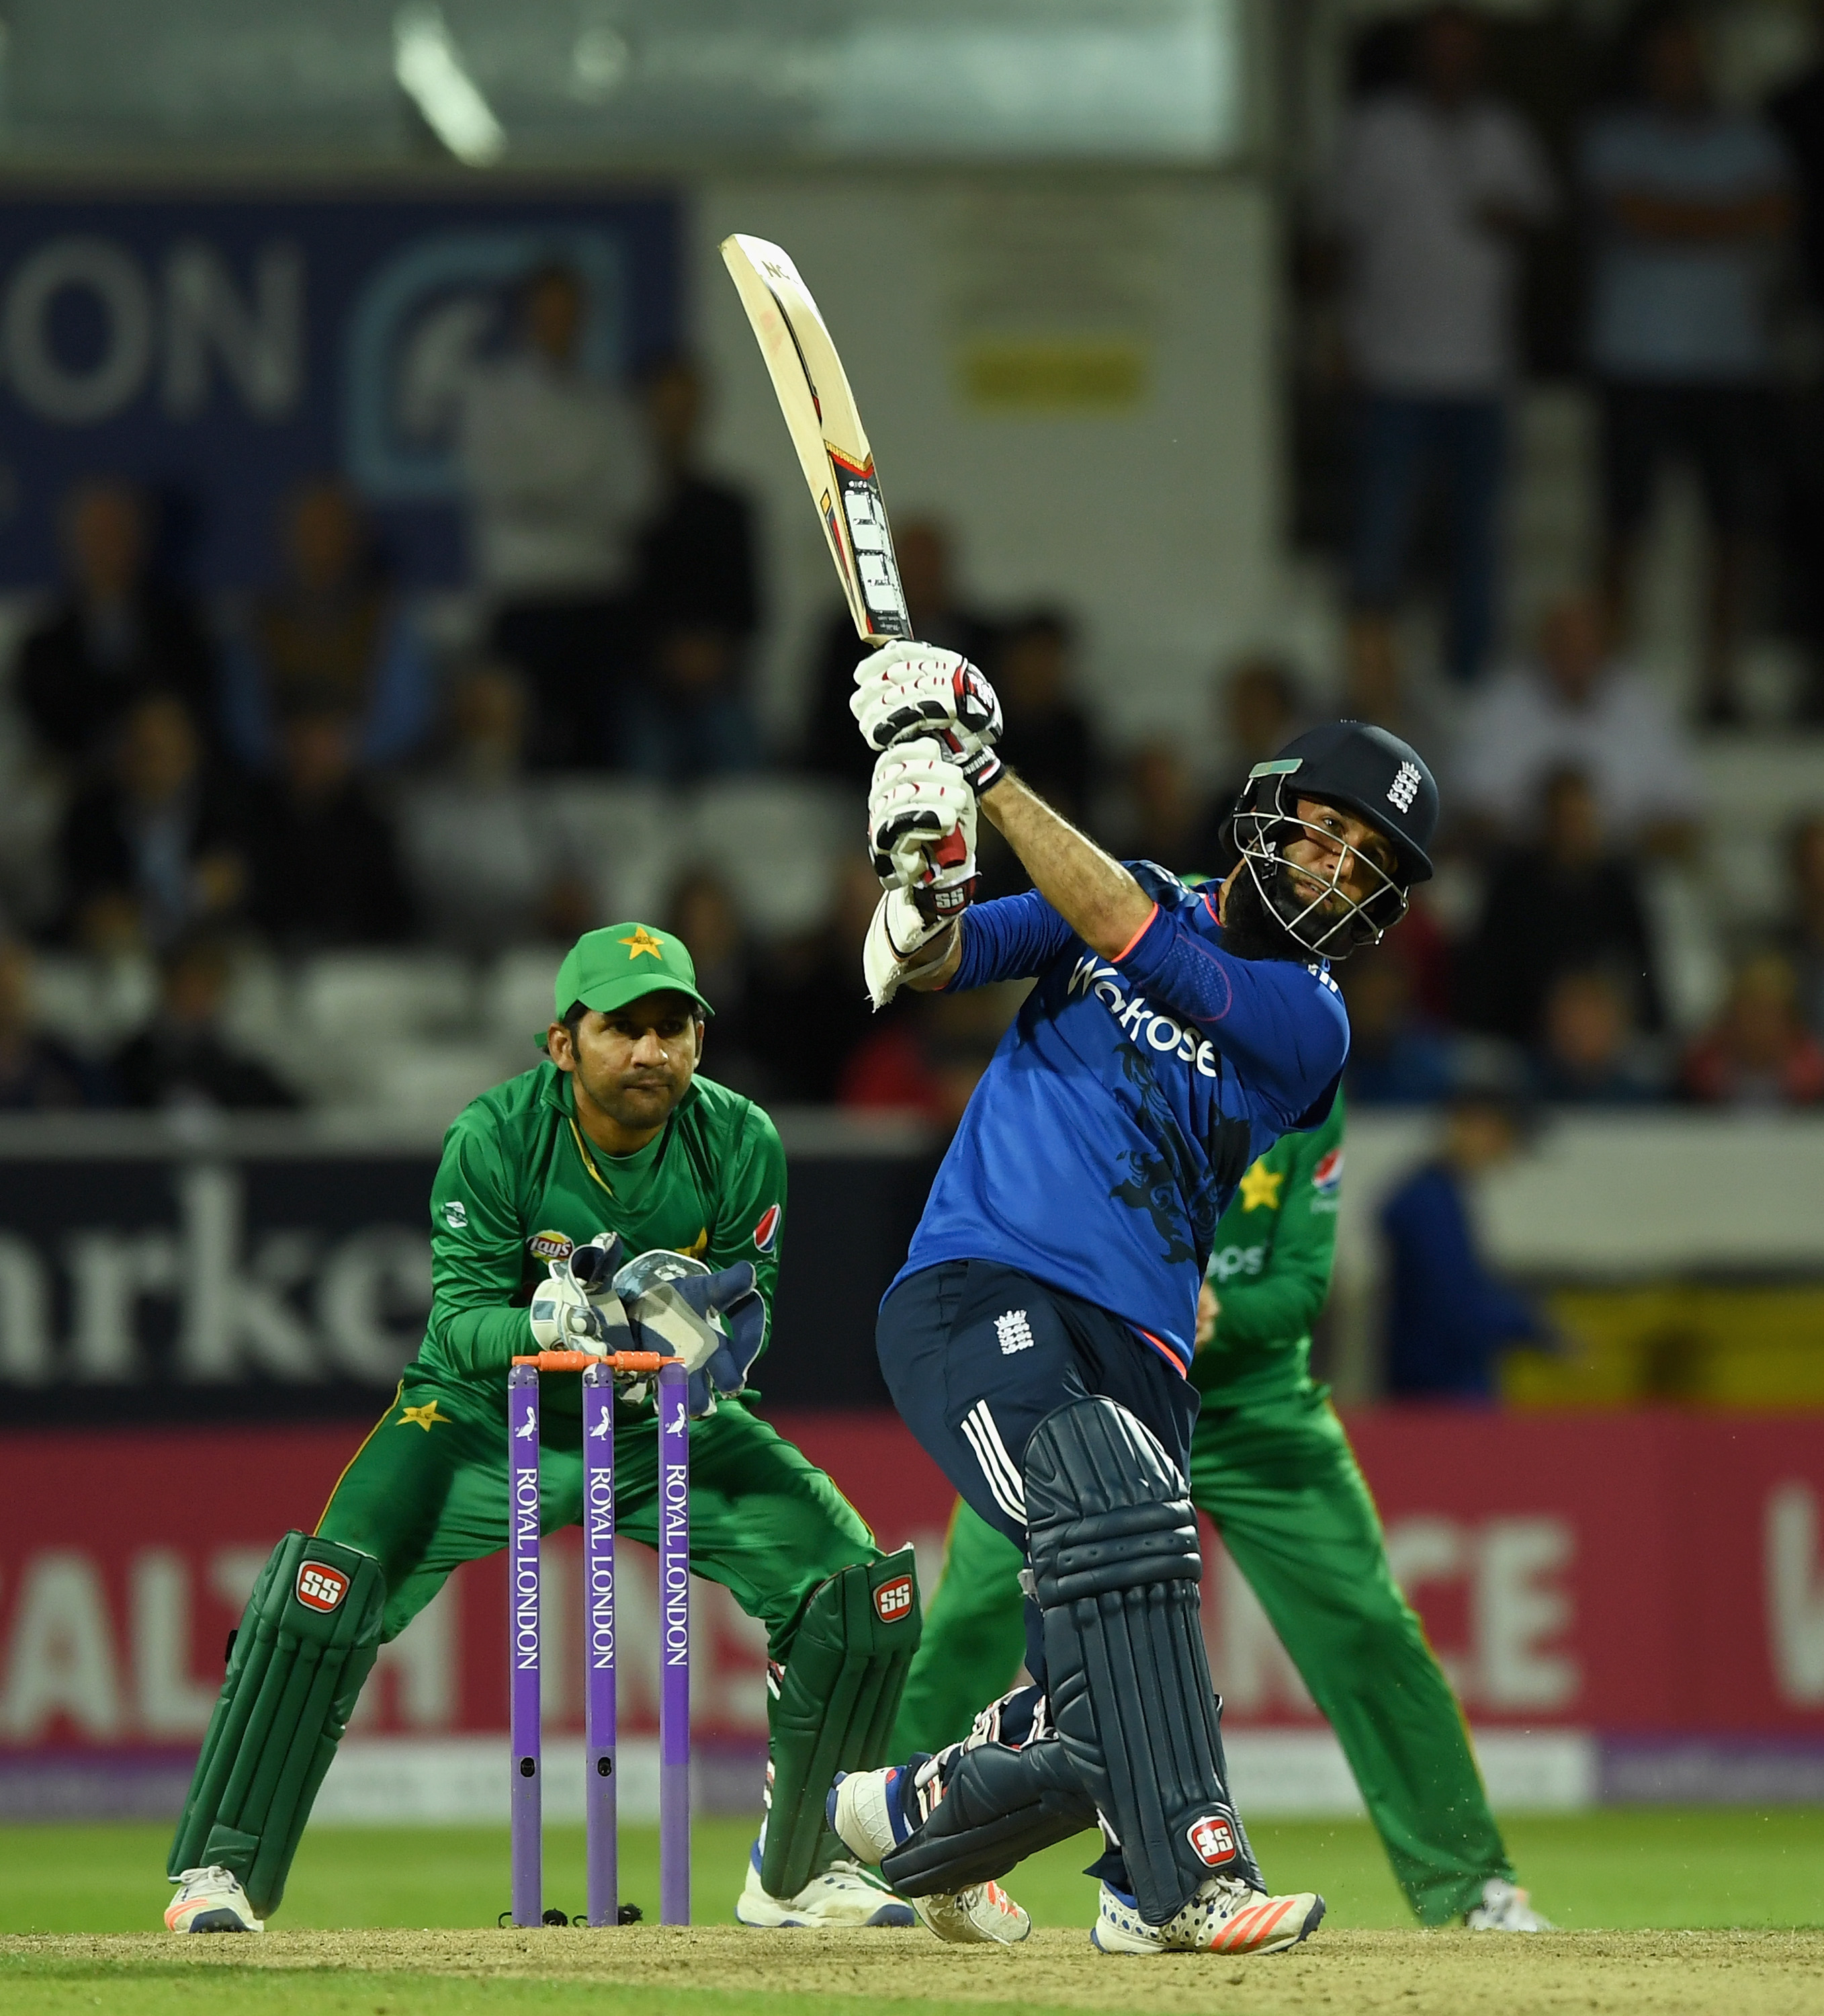 GALLERY: England Beat Pakistan By Four Wickets In The